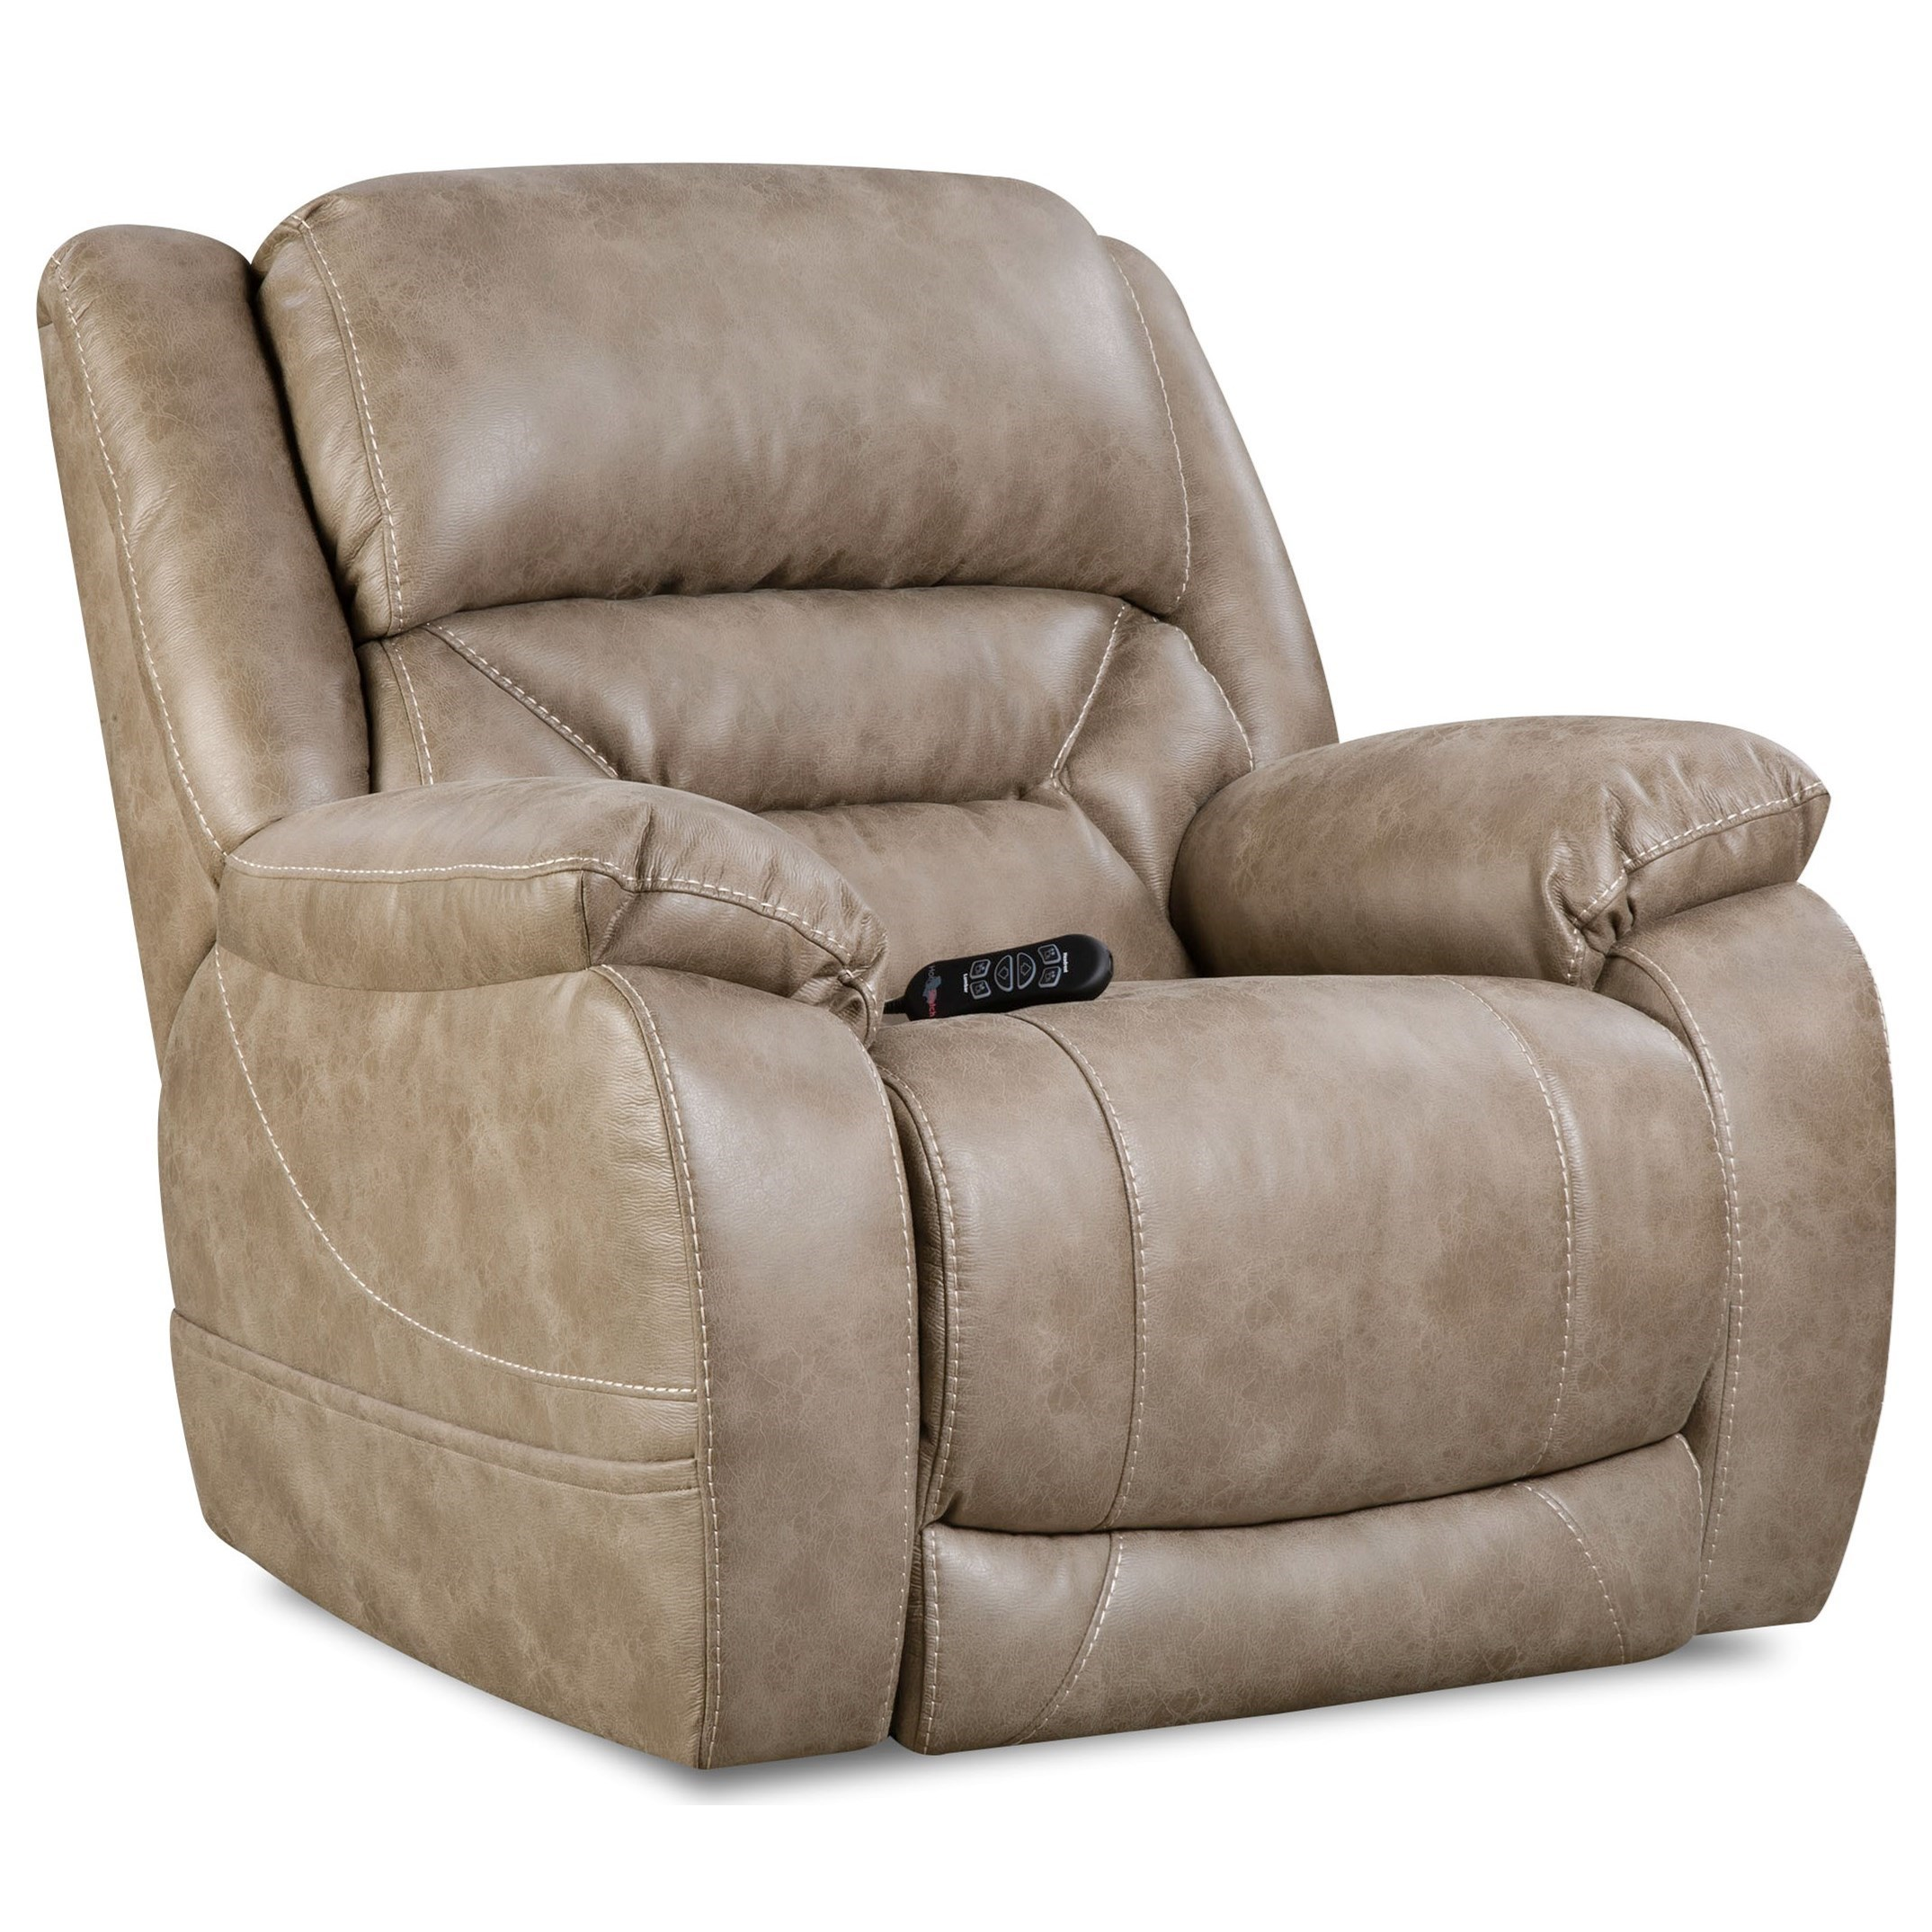 HomeStretch Enterprise Casual Power Recliner with Power Headrest - Johnny Janosik - Three Way Recliners  sc 1 st  Johnny Janosik & HomeStretch Enterprise Casual Power Recliner with Power Headrest ... islam-shia.org